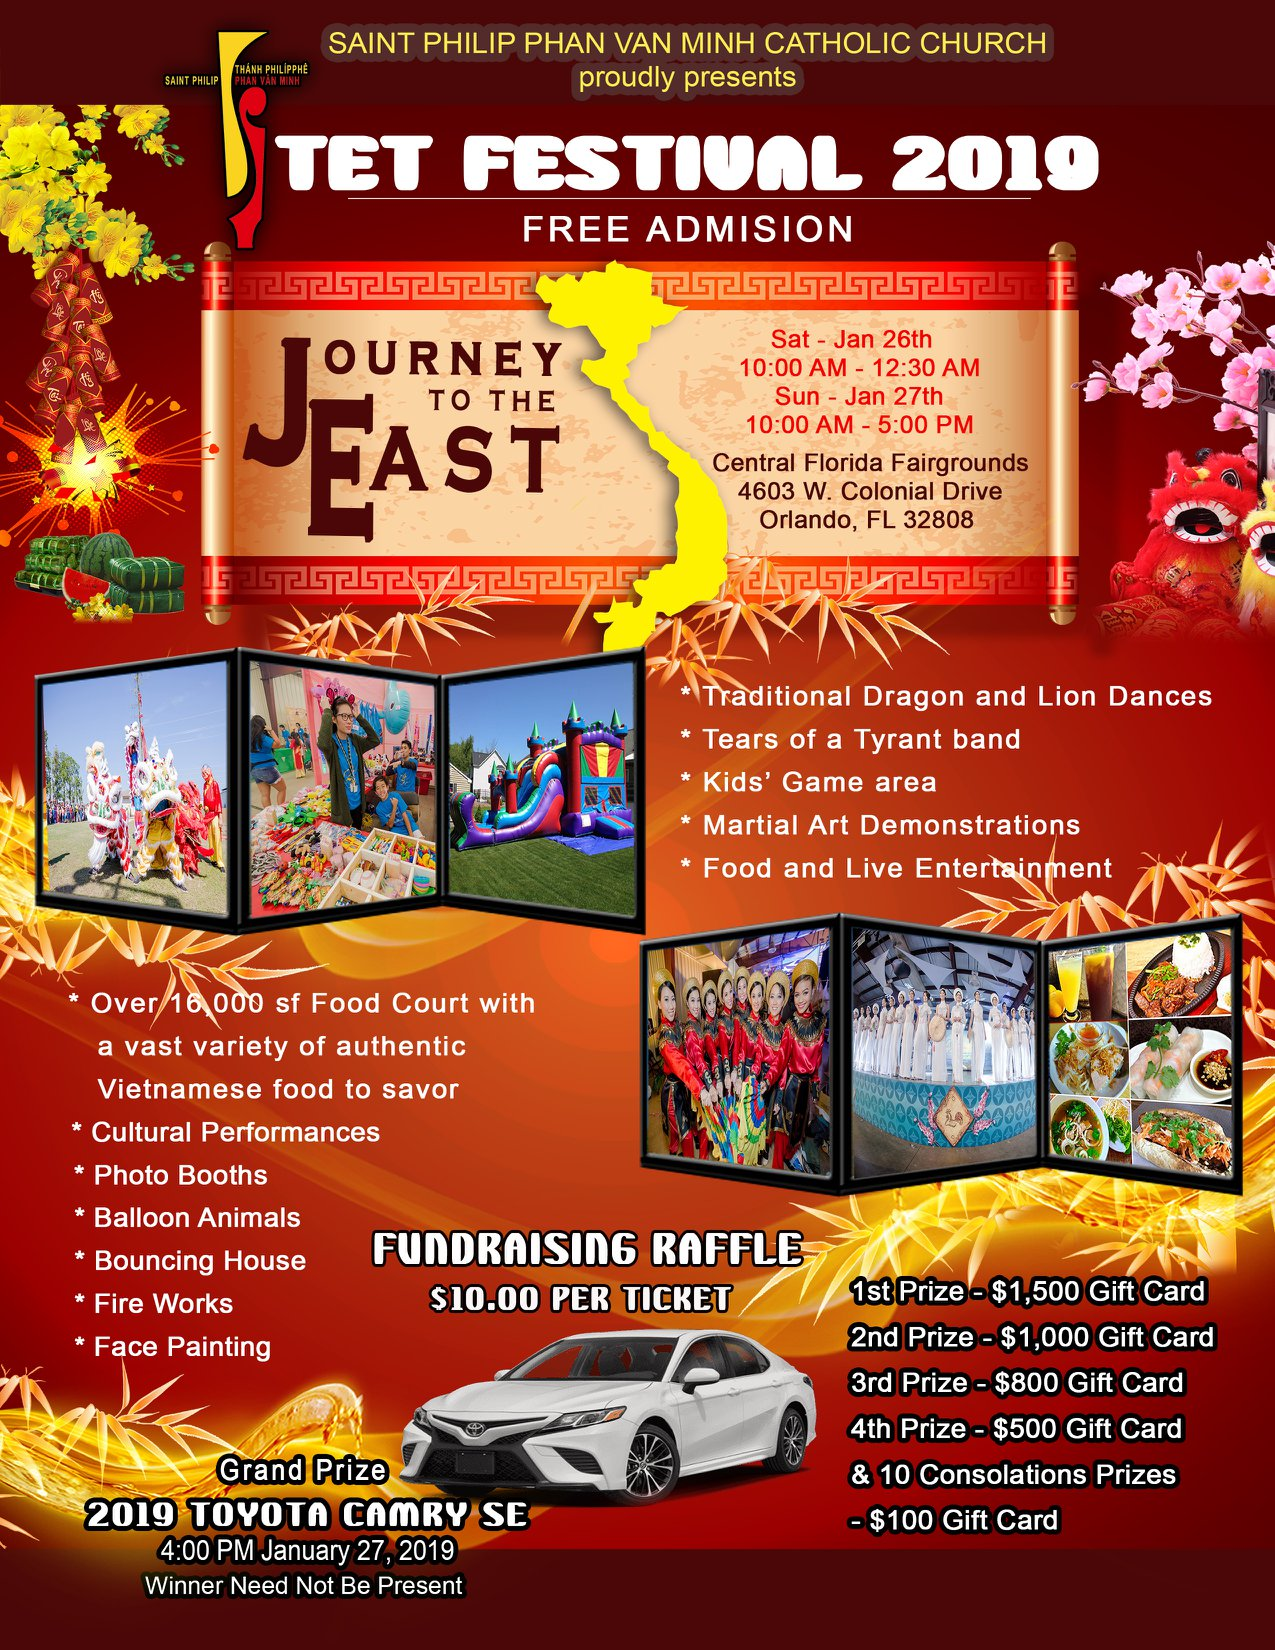 Journey to the East TET Festival 2019 in Orlando FL